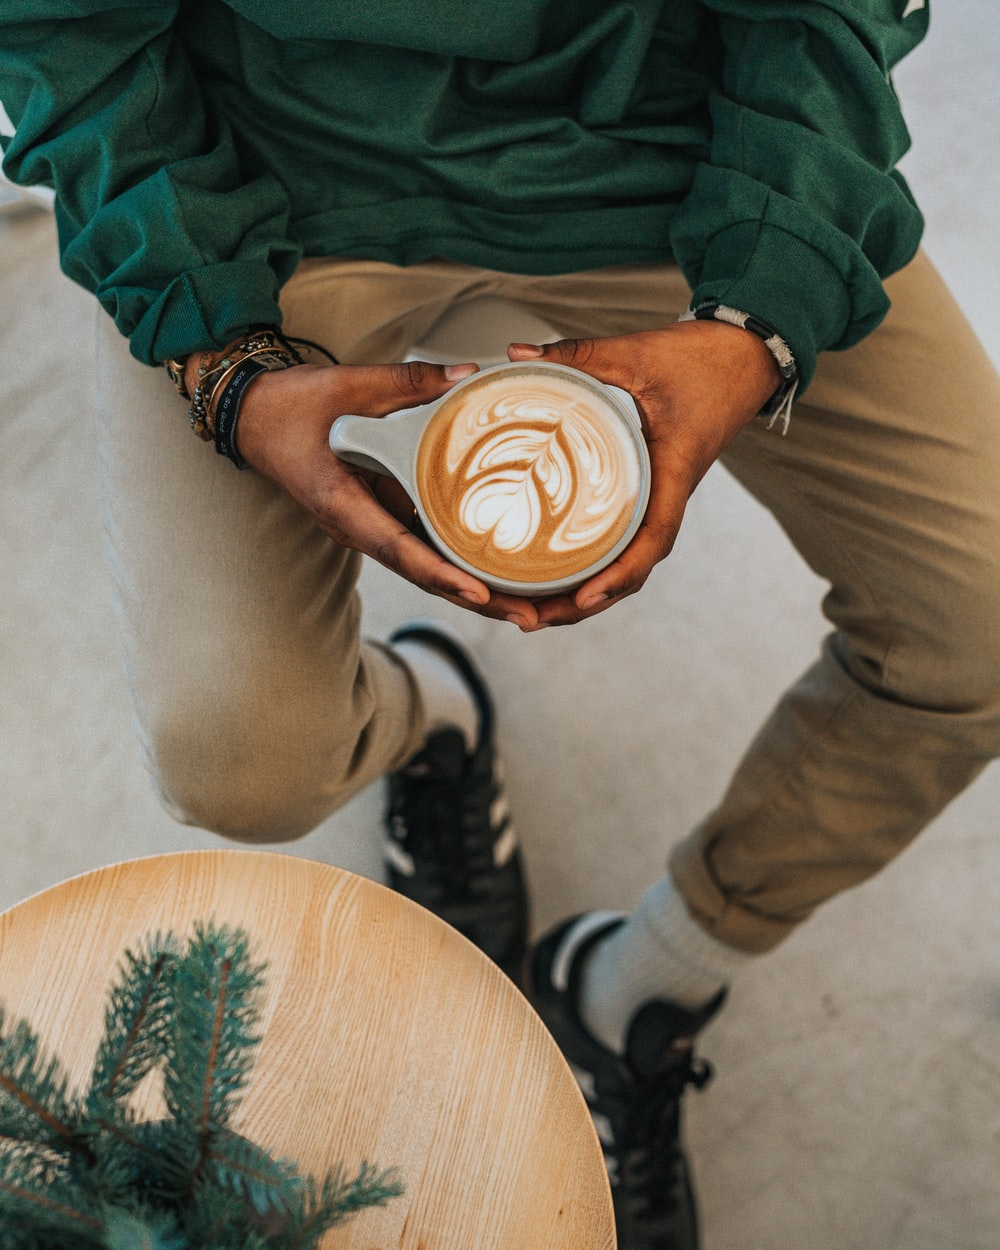 person holding cup with designed coffee